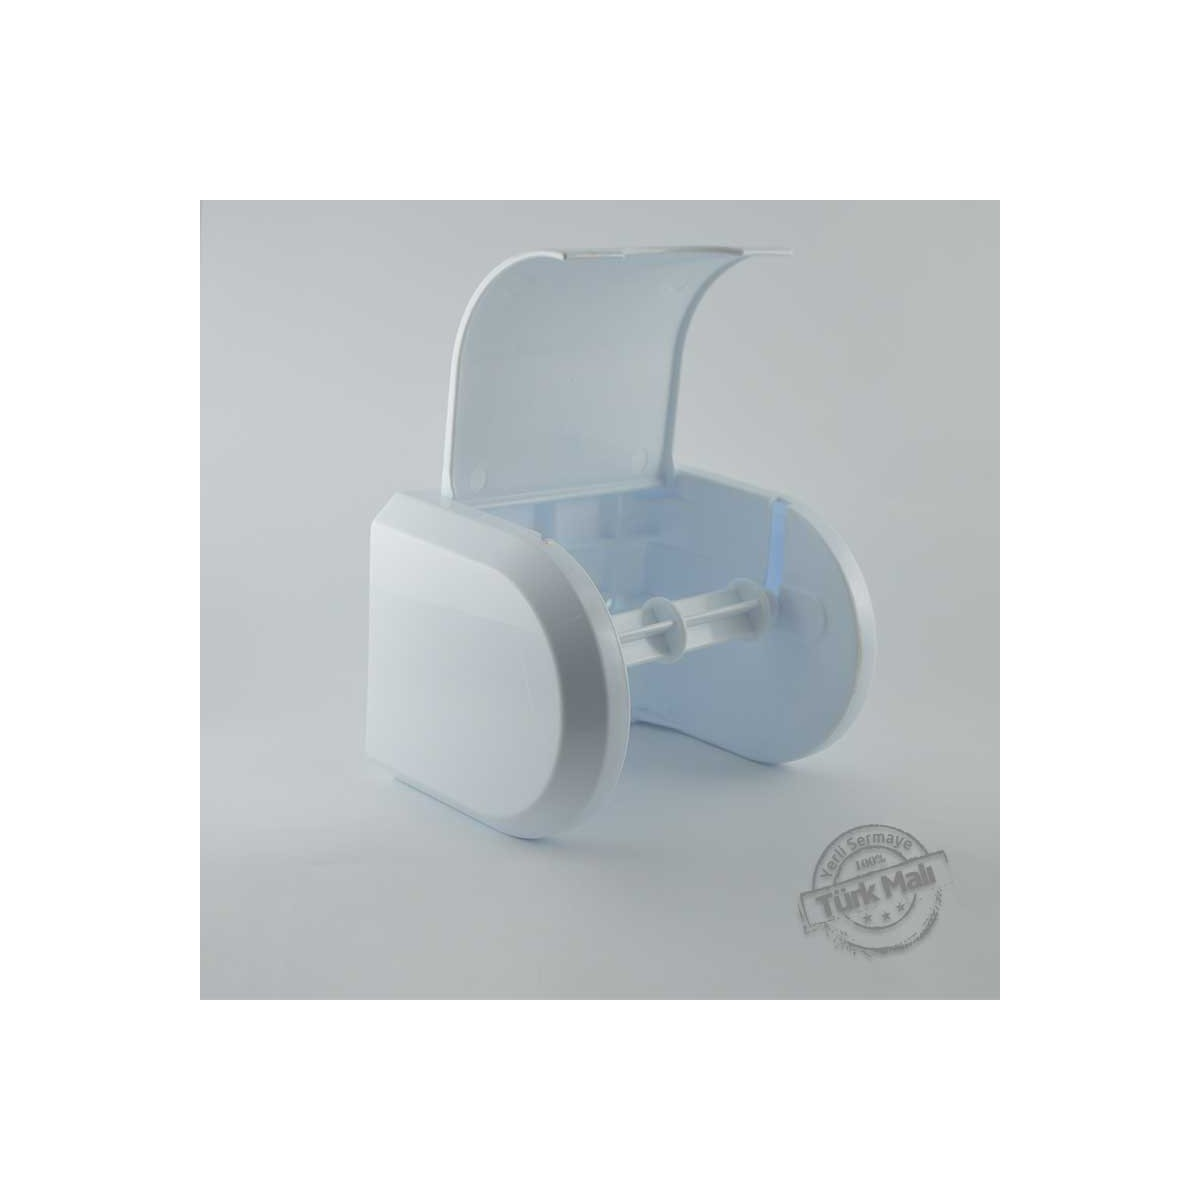 Covered Toilet Paper Storage Covered Toilet Paper Holder Seç Ser Plastic